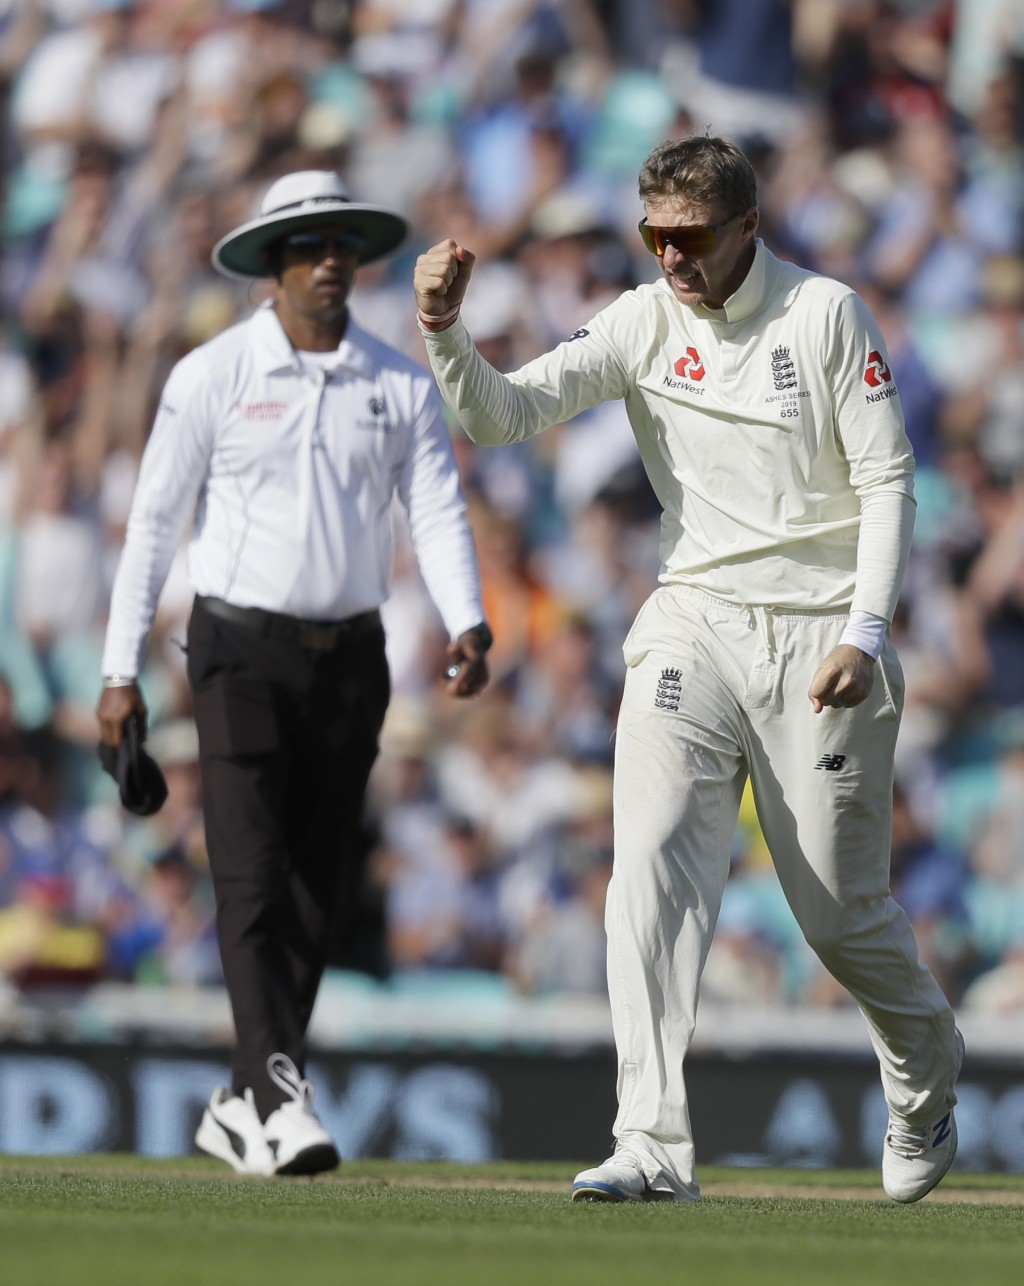 England's Joe Root celebrates taking the wicket of Australia's Mitchell Marsh during the fourth day of the fifth Ashes test match between England and